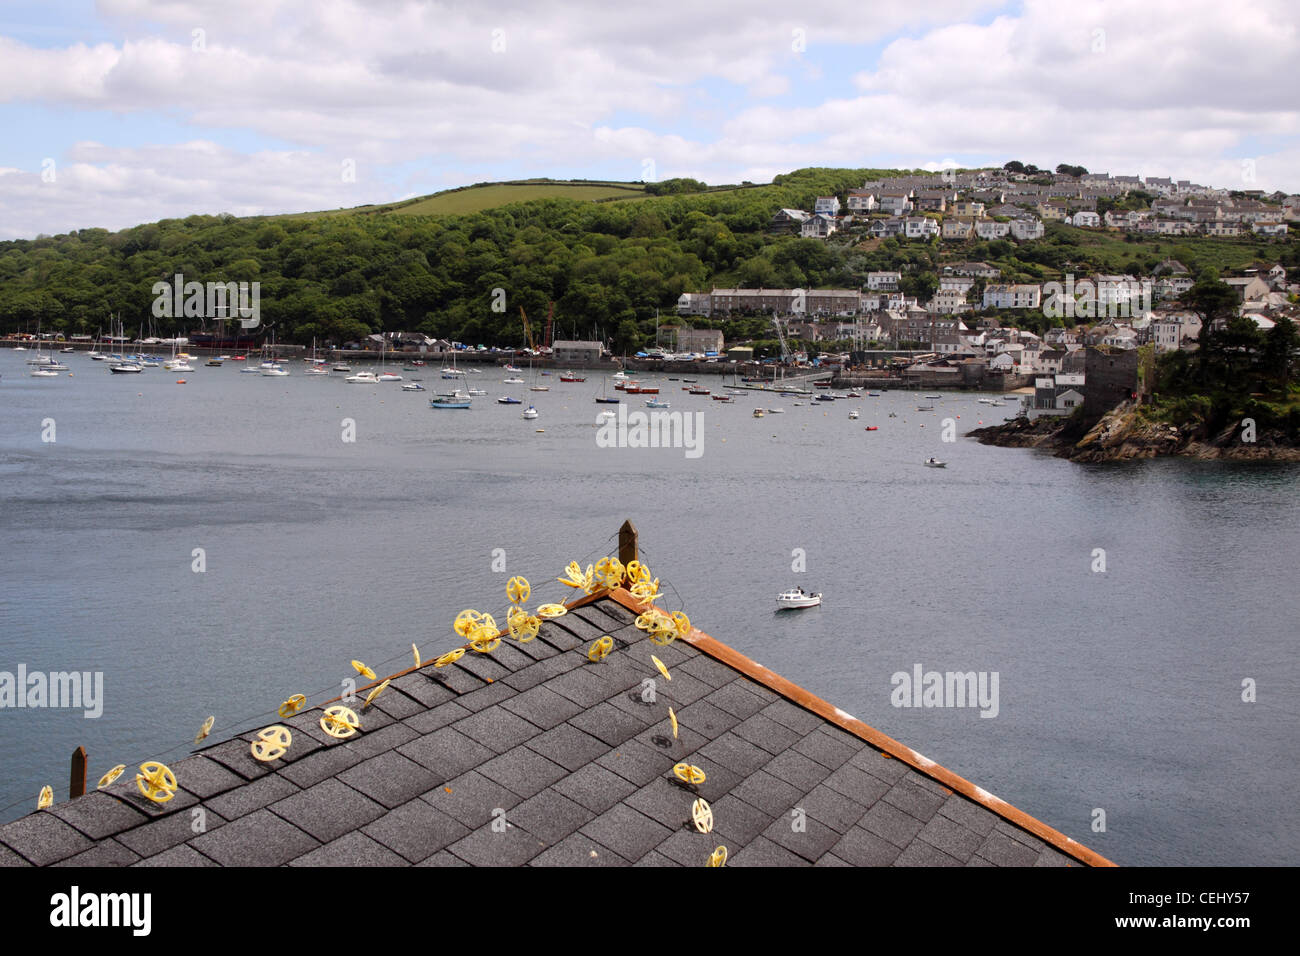 A Seagull Deterrent On A Rooftop At Fowey Looking Out